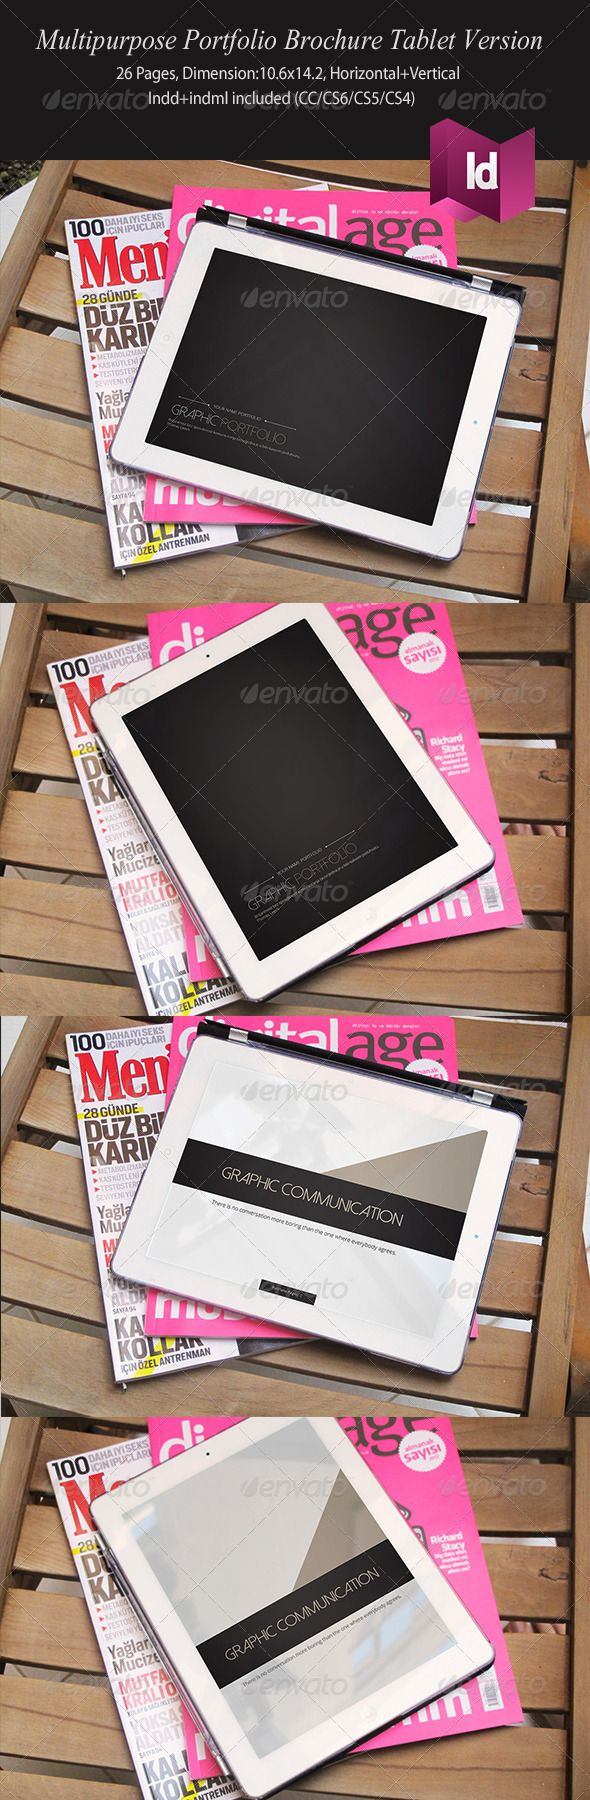 Multipurpose Portfolio Brochure Tablet Version